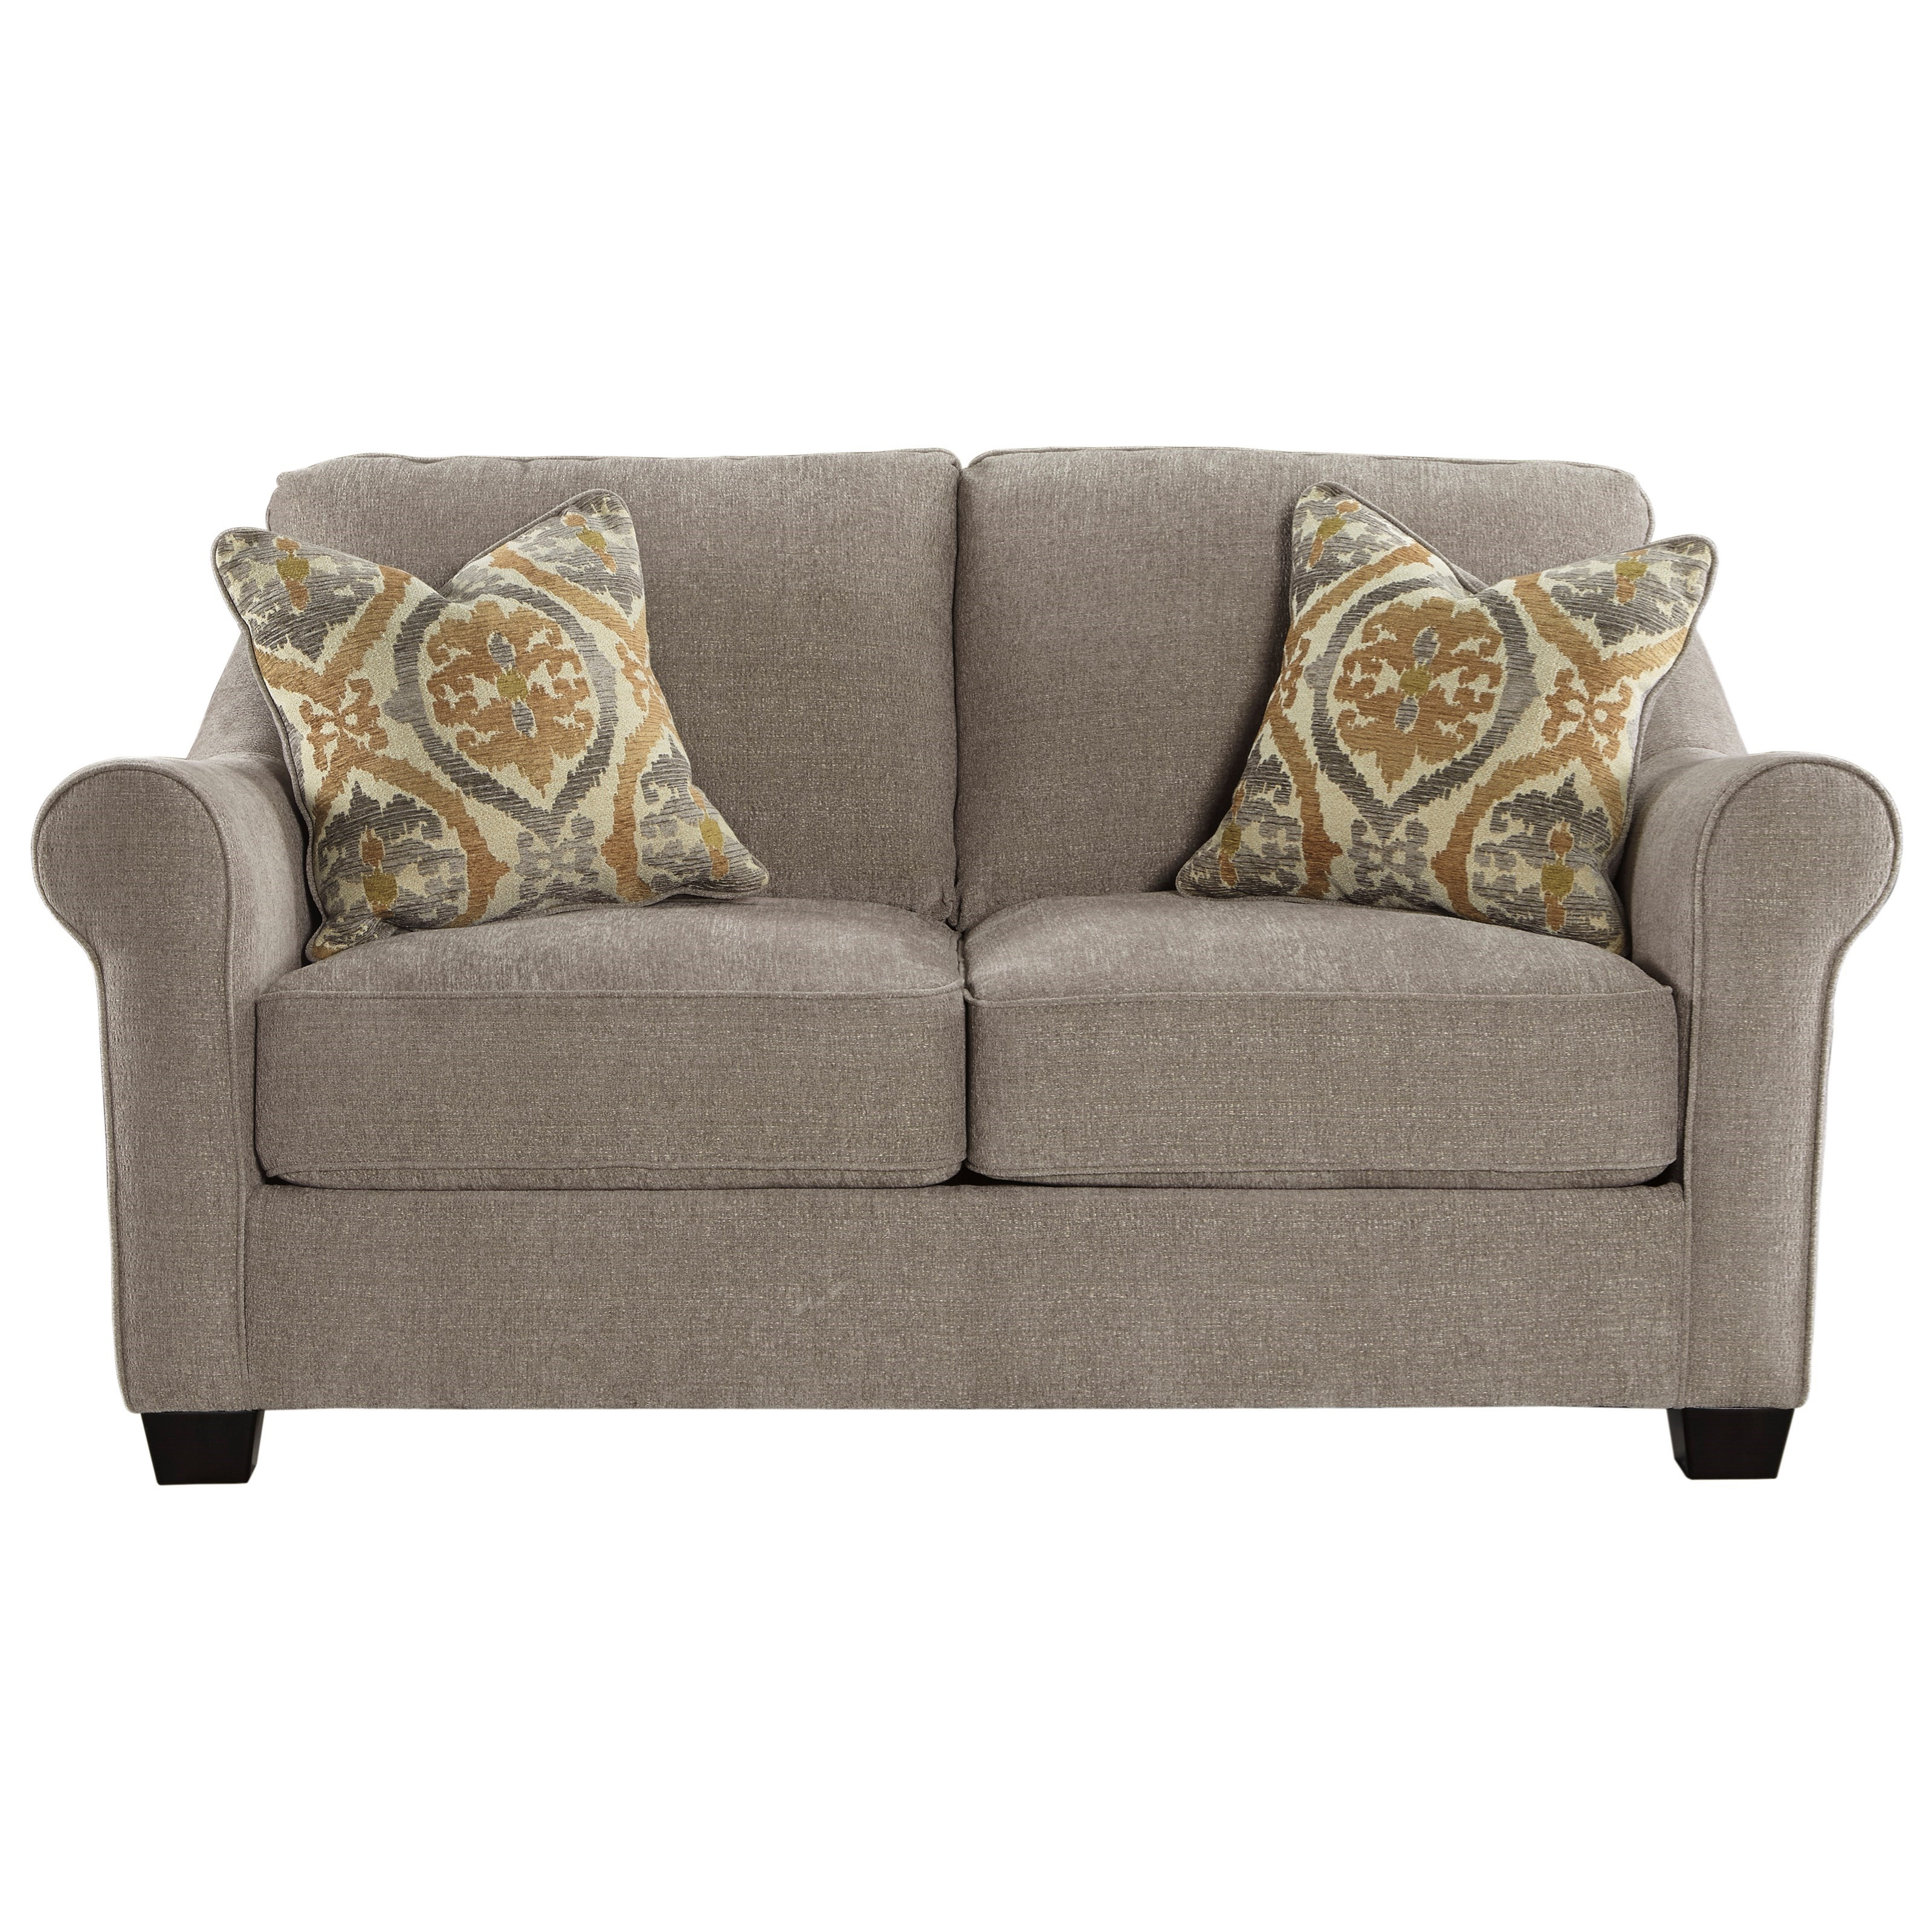 Benchcraft Leola Loveseat - Item Number: 5360135